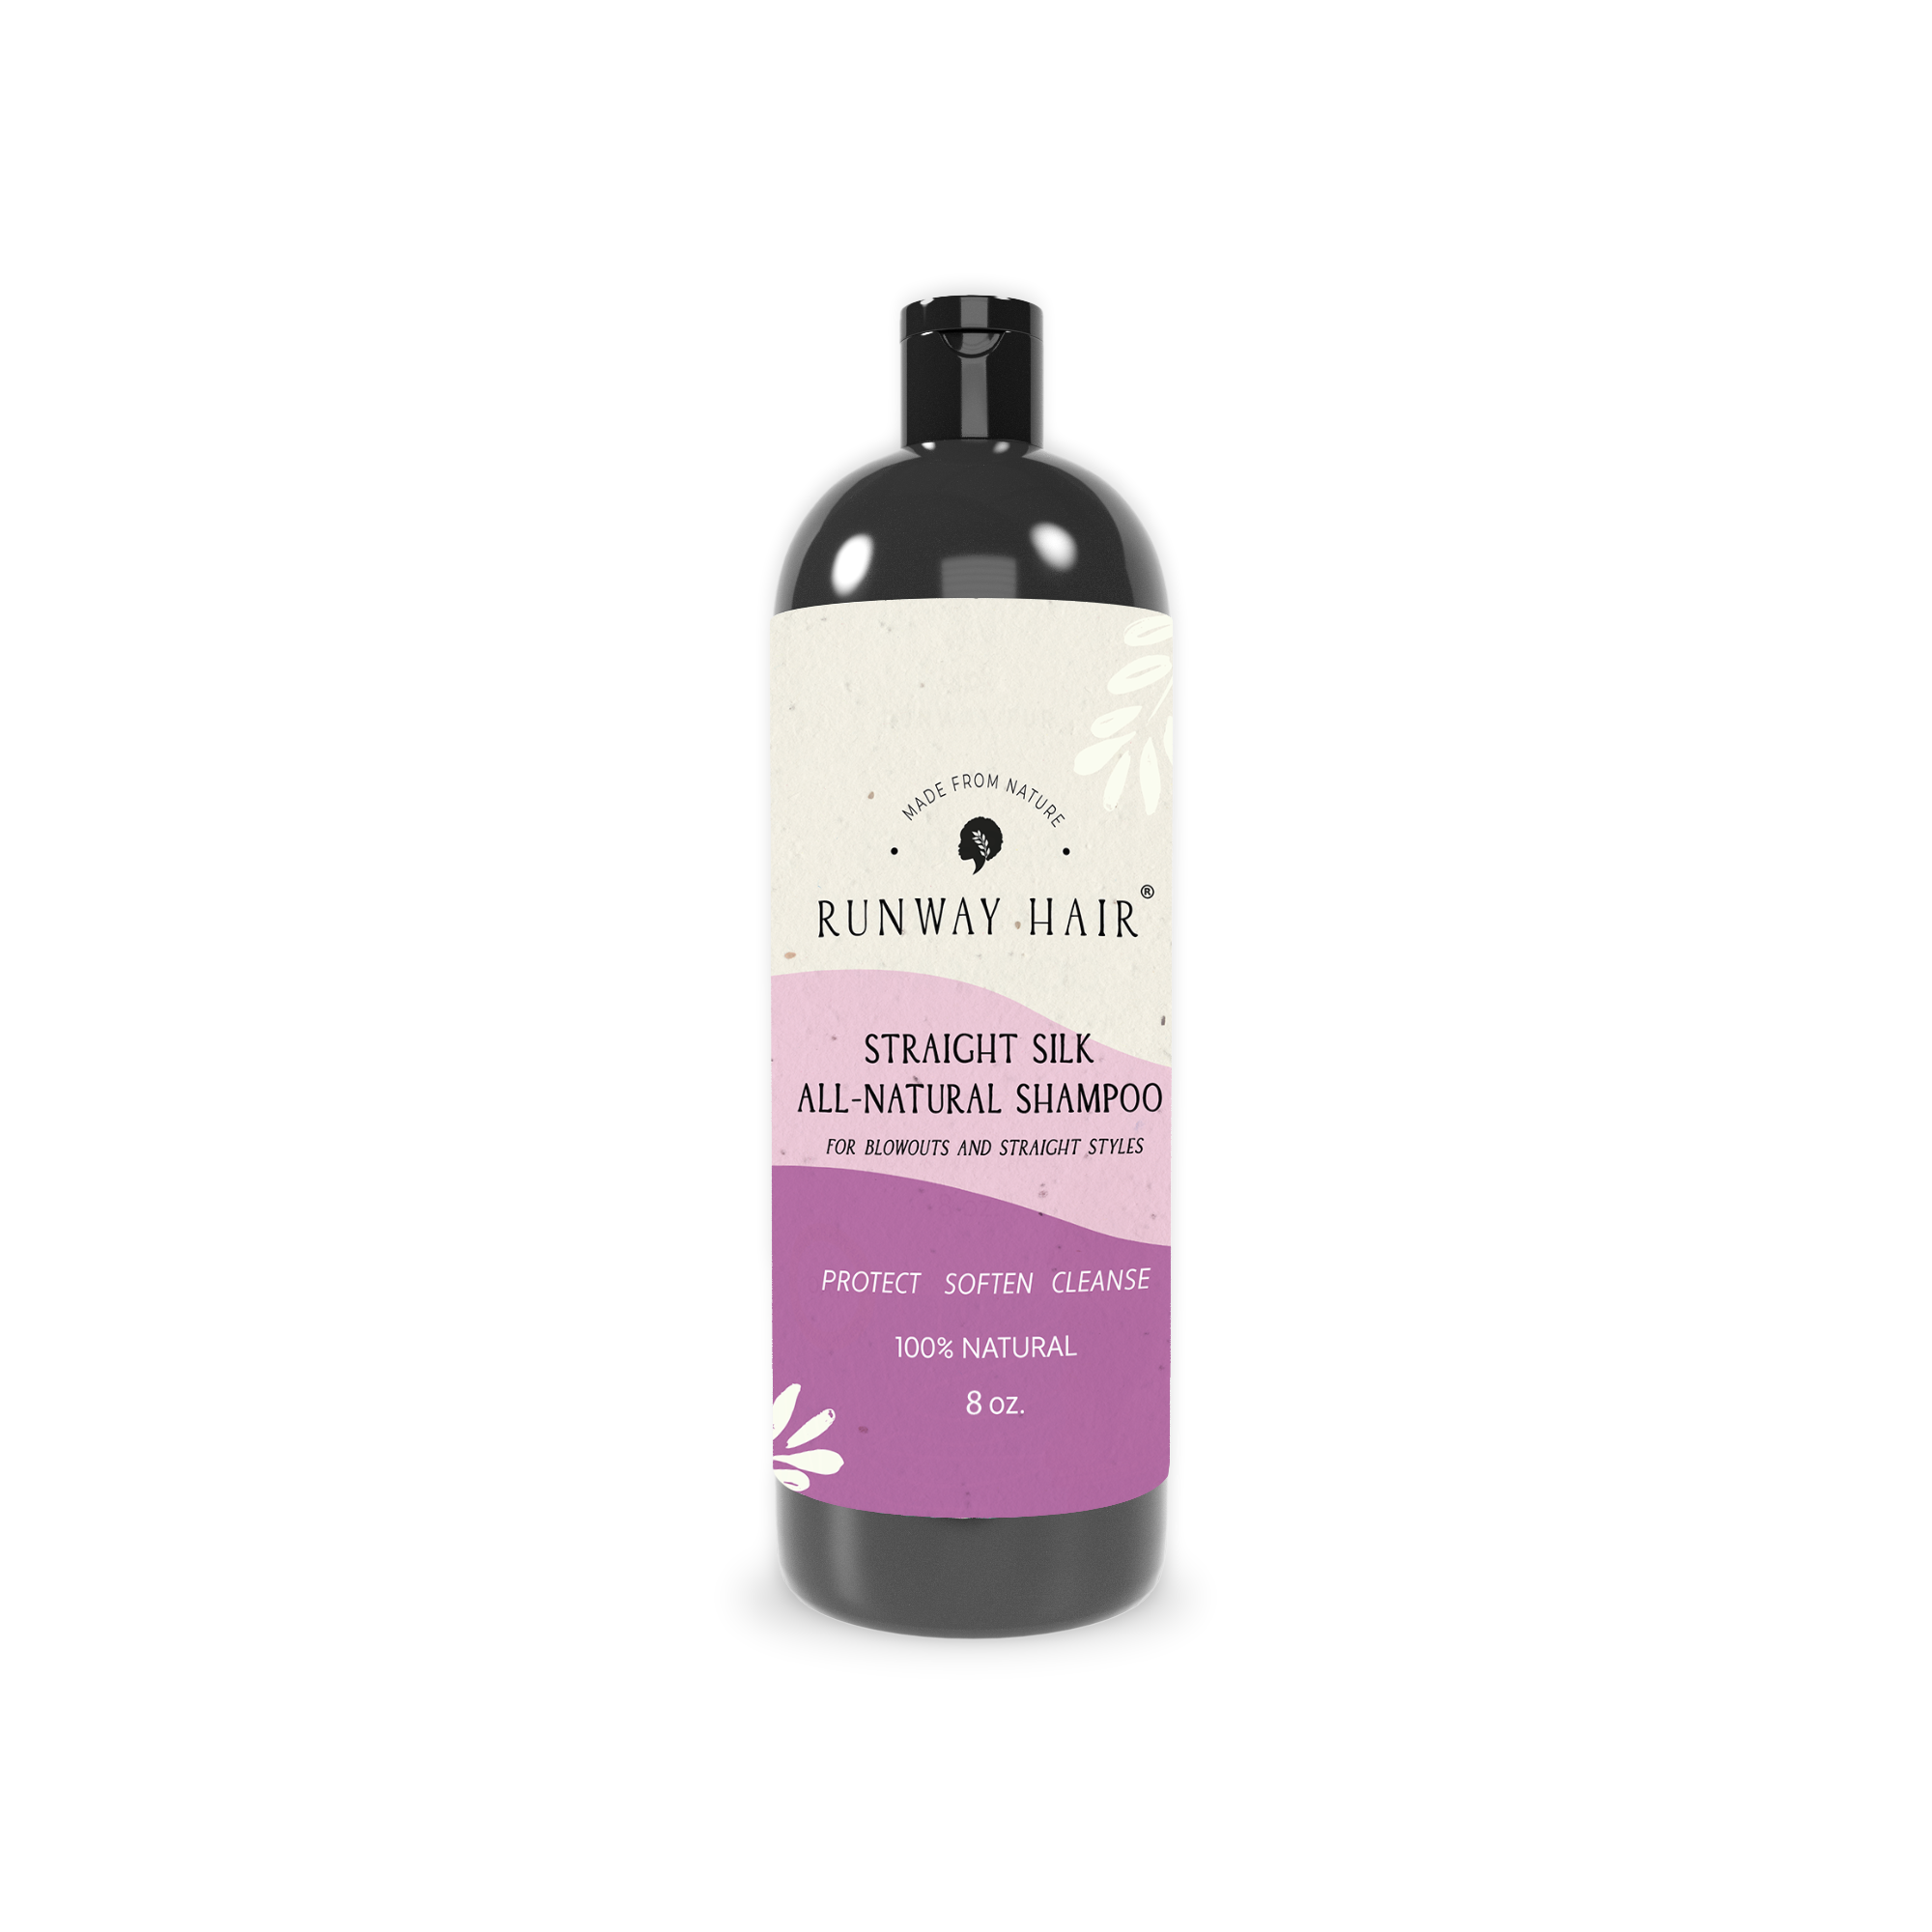 Straight Silk All Natural Shampoo (for Blowouts & Straight Styles)